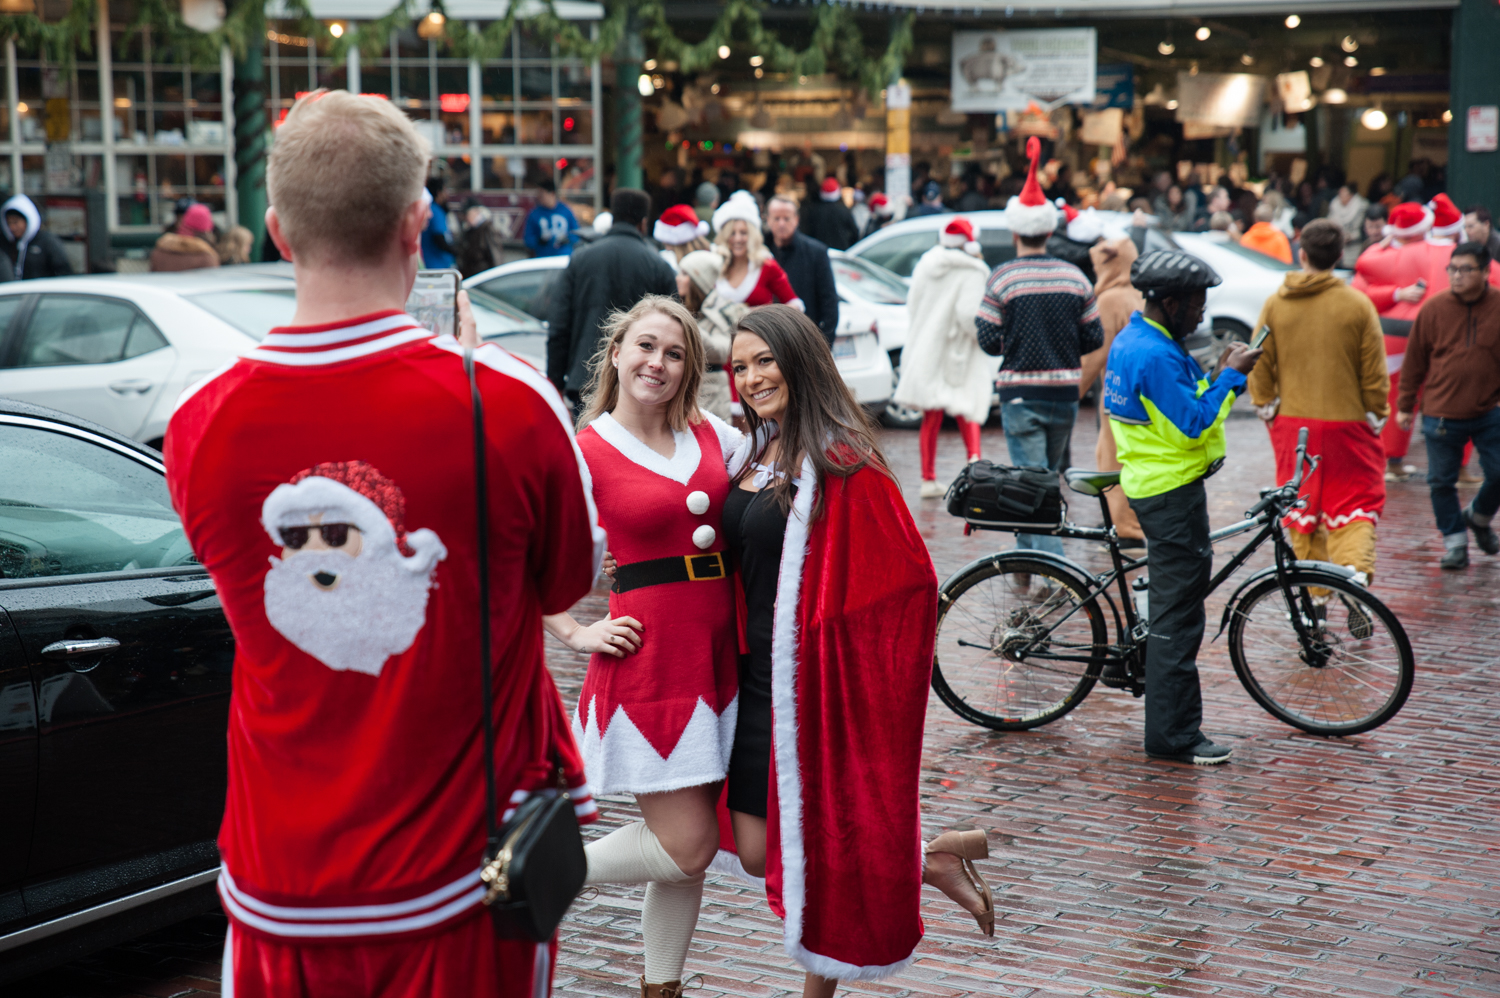 "Thousands of Santas flooded the streets of Seattle for the annual Seattle Santa Con. Hundreds of people packed bars downtown in Santa, Elf and Reindeer attire. The focus is on spontaneity and creativity, while having a good time and spreading cheer and goodwill. and their #1 rule? ""My name is Santa. Your name is Santa. We are Santa. Who's in charge here? Santa!"" (Image: Elizabeth Crook / Seattle Refined)"